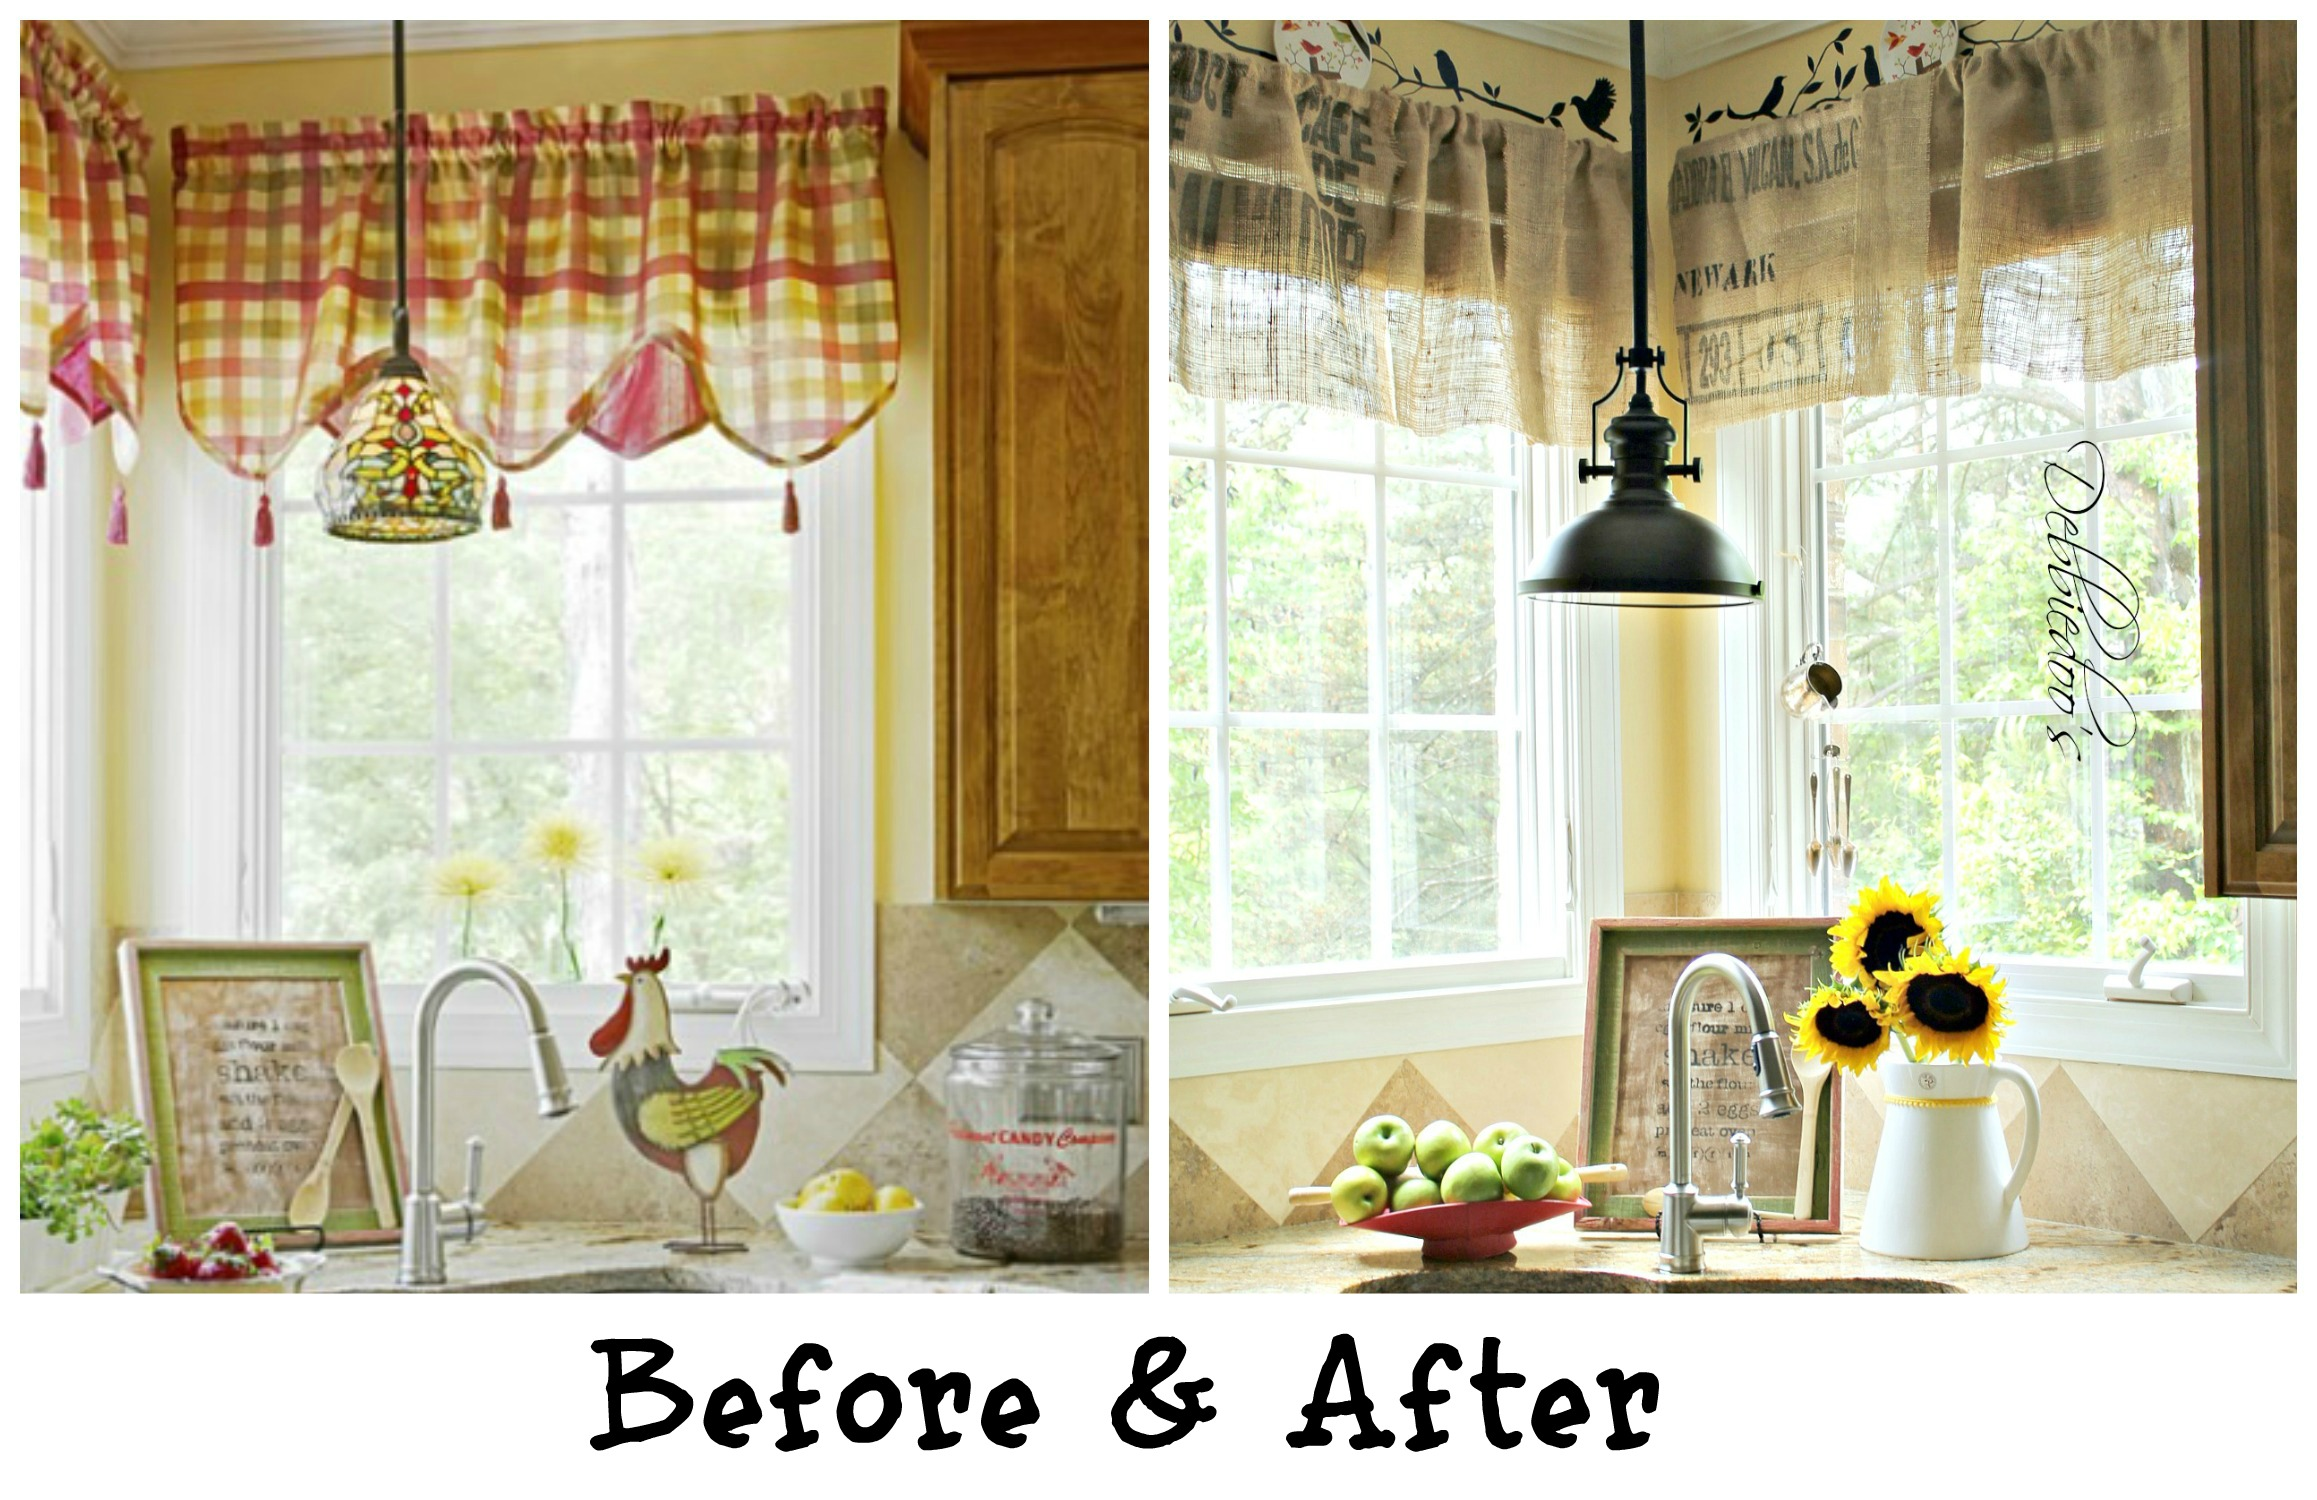 Diy no sew burlap kitchen valances made from coffee bags for Valance curtains for kitchen